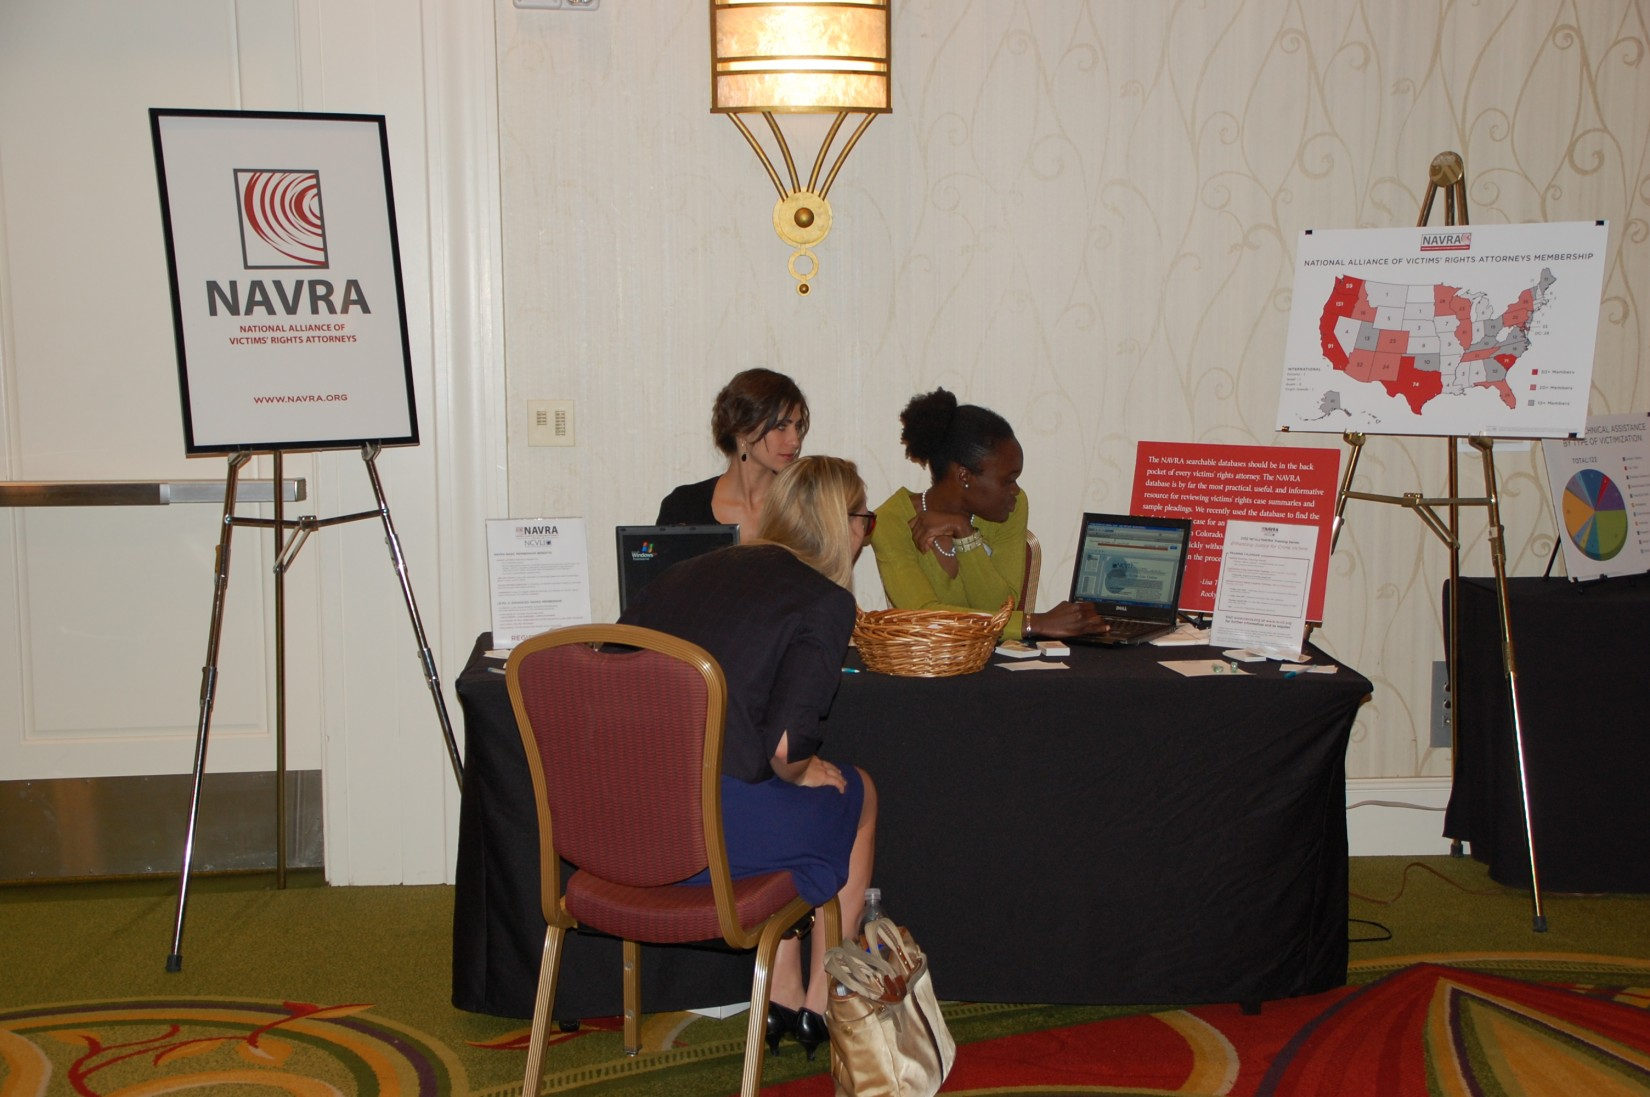 Information about the National Alliance of Victims' Rights Attorneys was provided to Conference attendees.